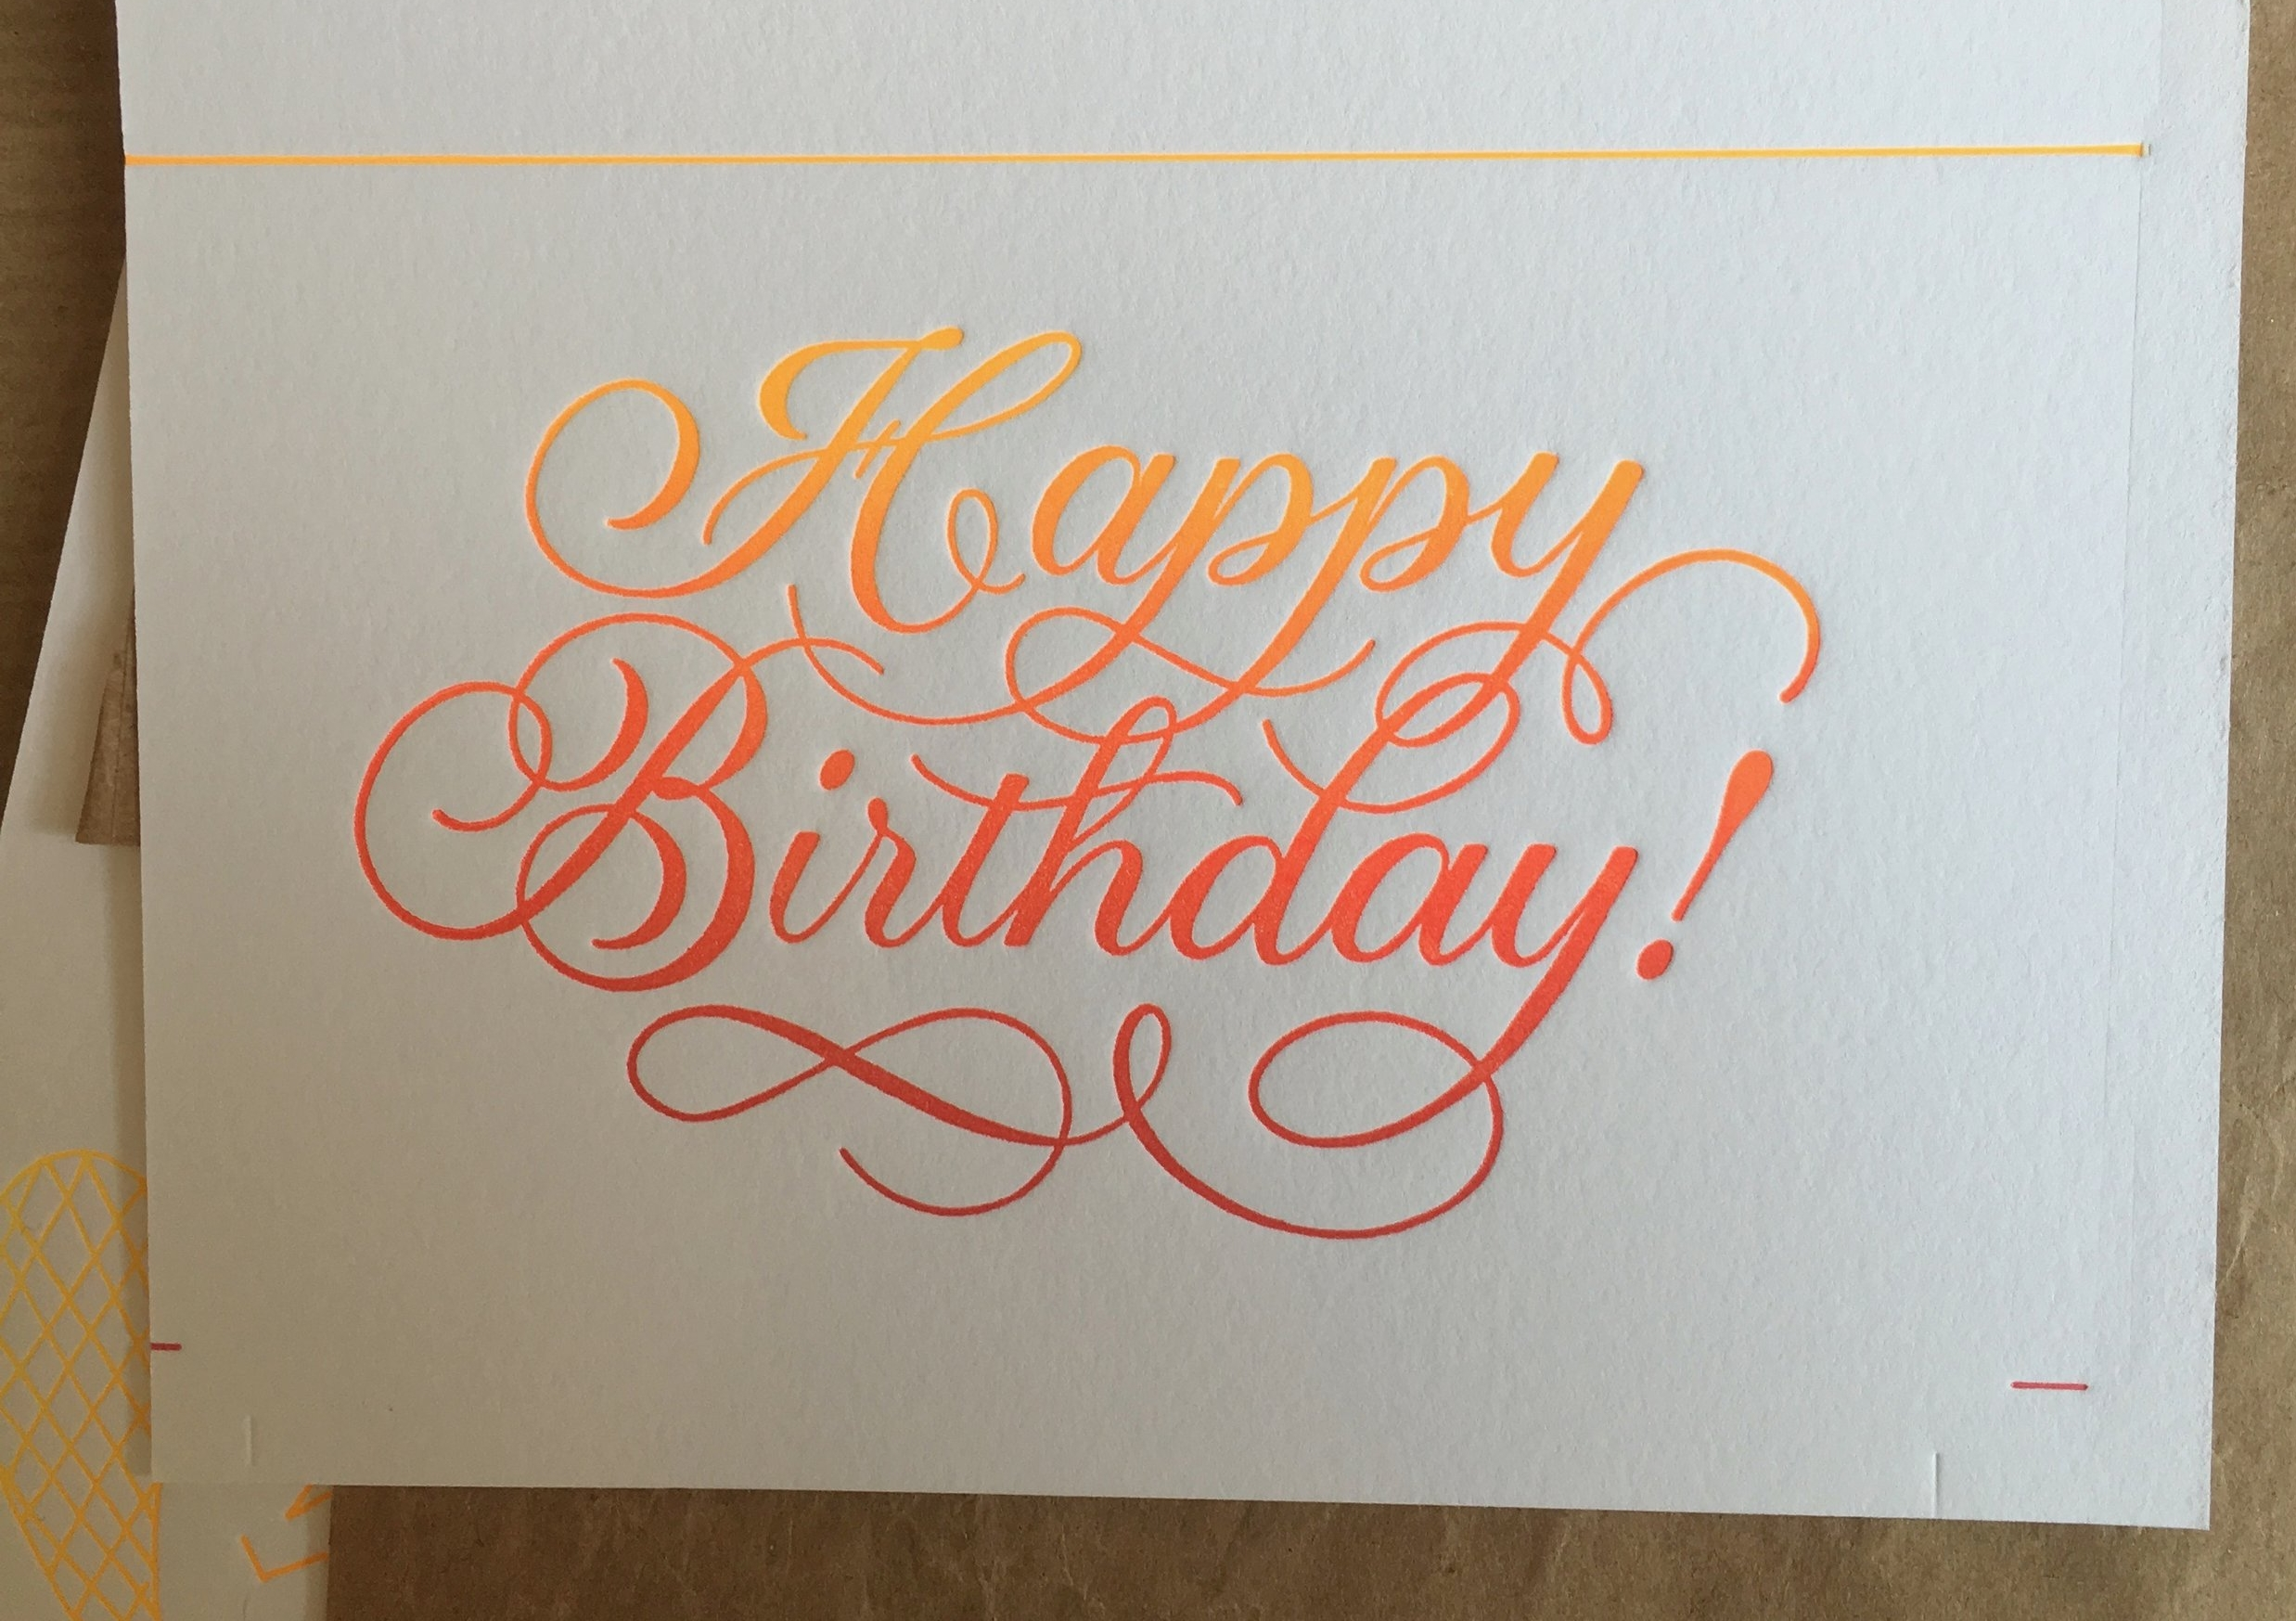 happybirthday_letterpress_splitfountain_passepartout.jpg